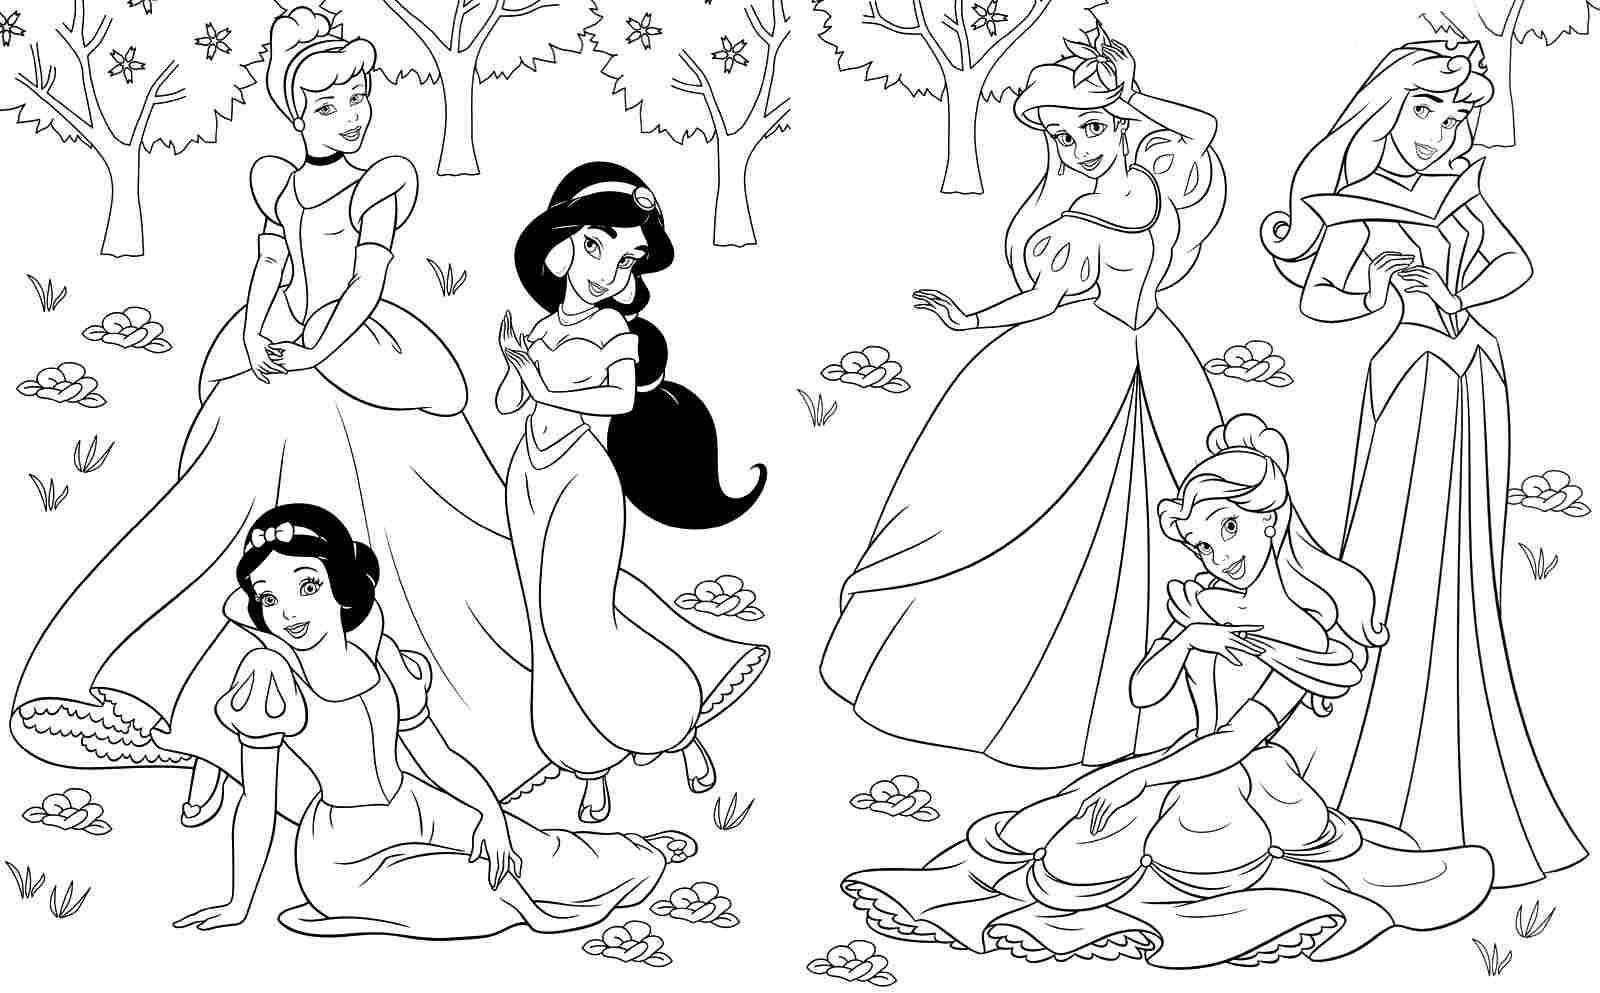 Best Disney Princess Coloring Pages Free 376 Printable Coloringace To Print  Of Disney Coloring Pages Disney